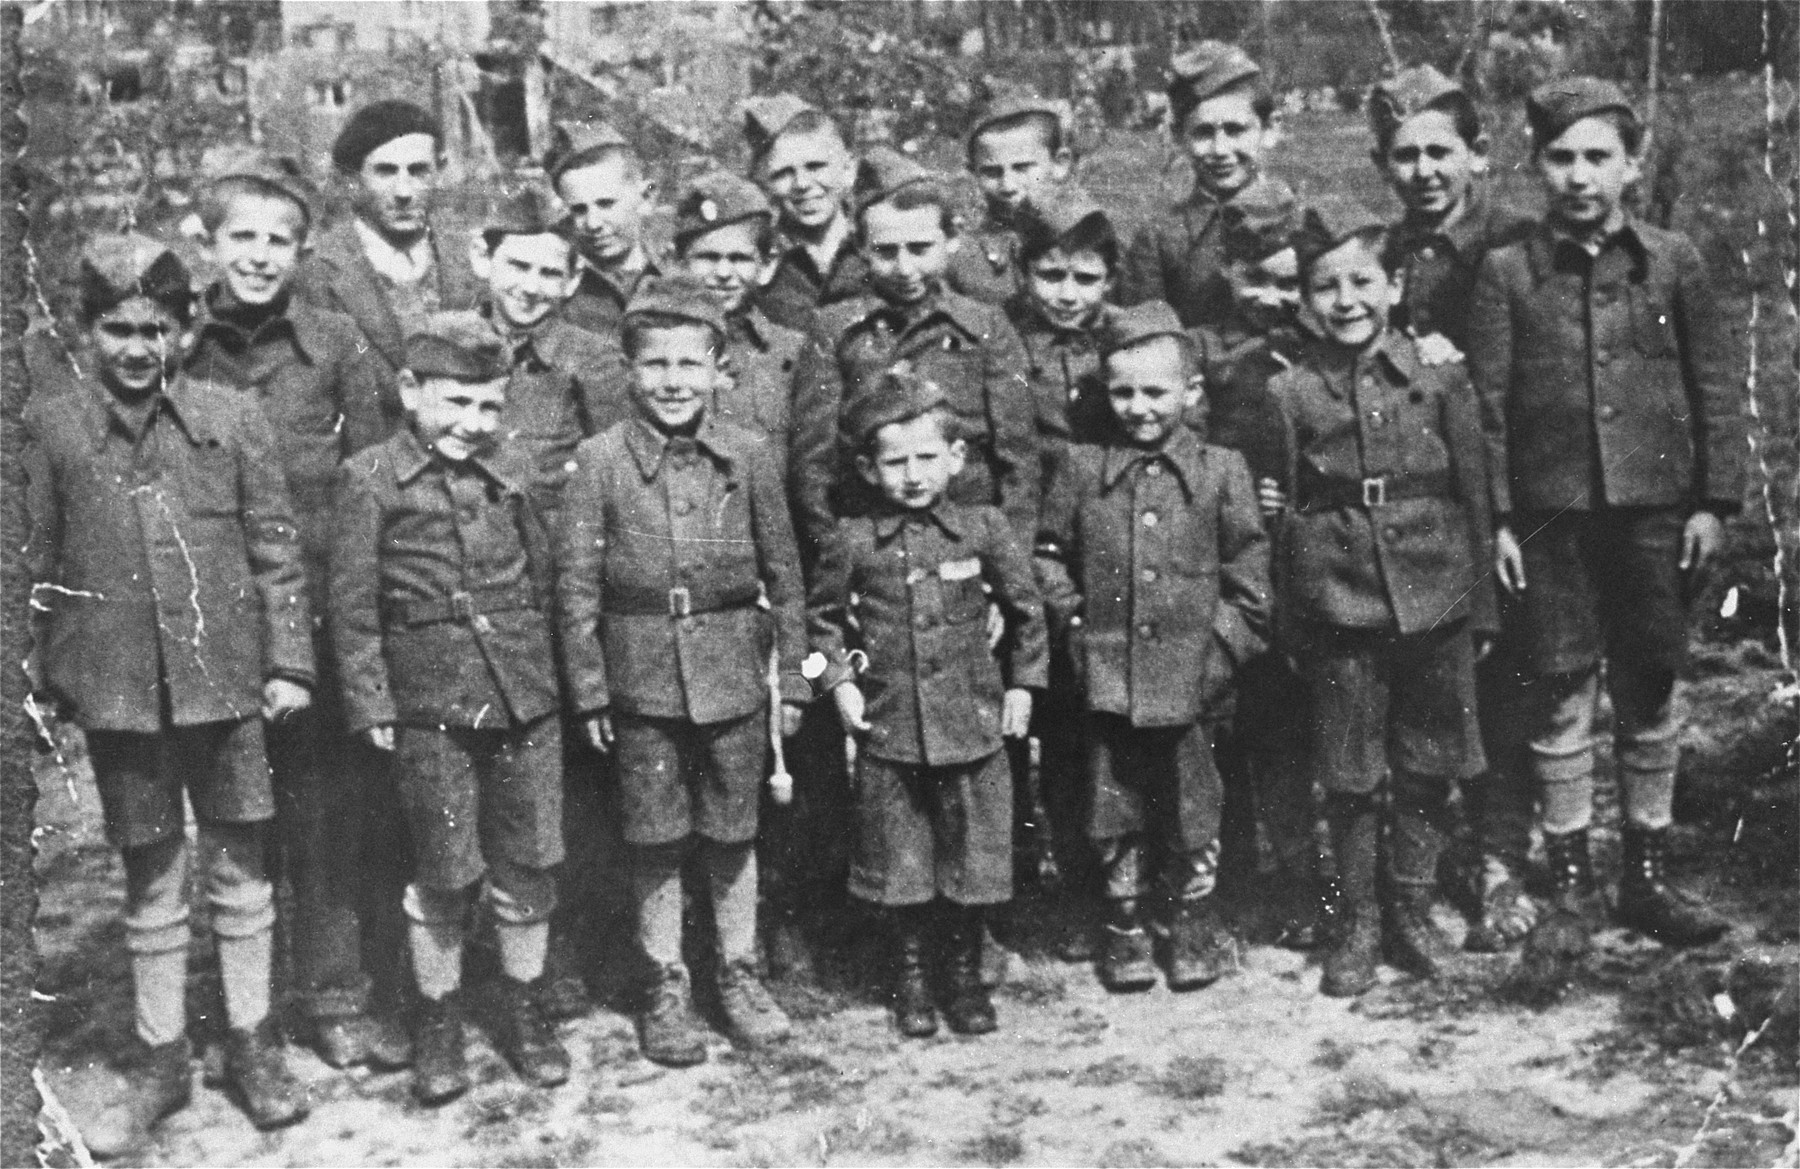 Group portrait of child survivors of the Buchenwald concentration camp.    The boys are dressed in outfits made from German uniforms due to a clothing shortage.  Among those pictured are first row (left to right): Lolek Blum, David Perlmutter, Birenbaum, Joseph Schleifstein,  unidentified, and Israel Meir Lau (middle row, far right).  Middle row: Nathan Szwarc, Jack Neeman, Berek Silber, Jacques Finkel, unidentified, Marek Milstein, and Salek Finkelsztein.  Back row: Elek Grinbaum [or Grinberg], Chaim Finkelstajn [or Charles Finkel], Romek Wekselman [or Wajsman], and Abram Czapnik.